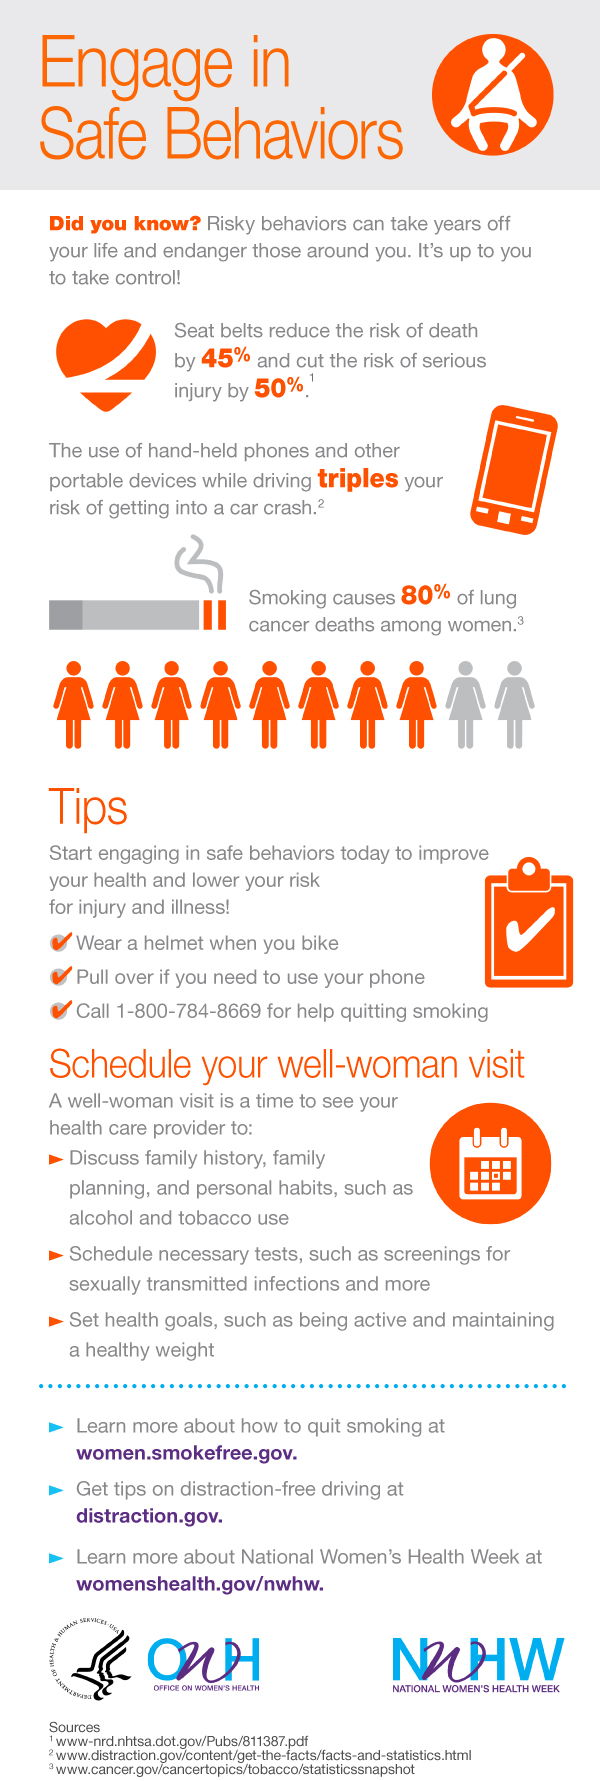 National Women's Health Week 2014 - Schedule Your Well-Woman Visit infographic